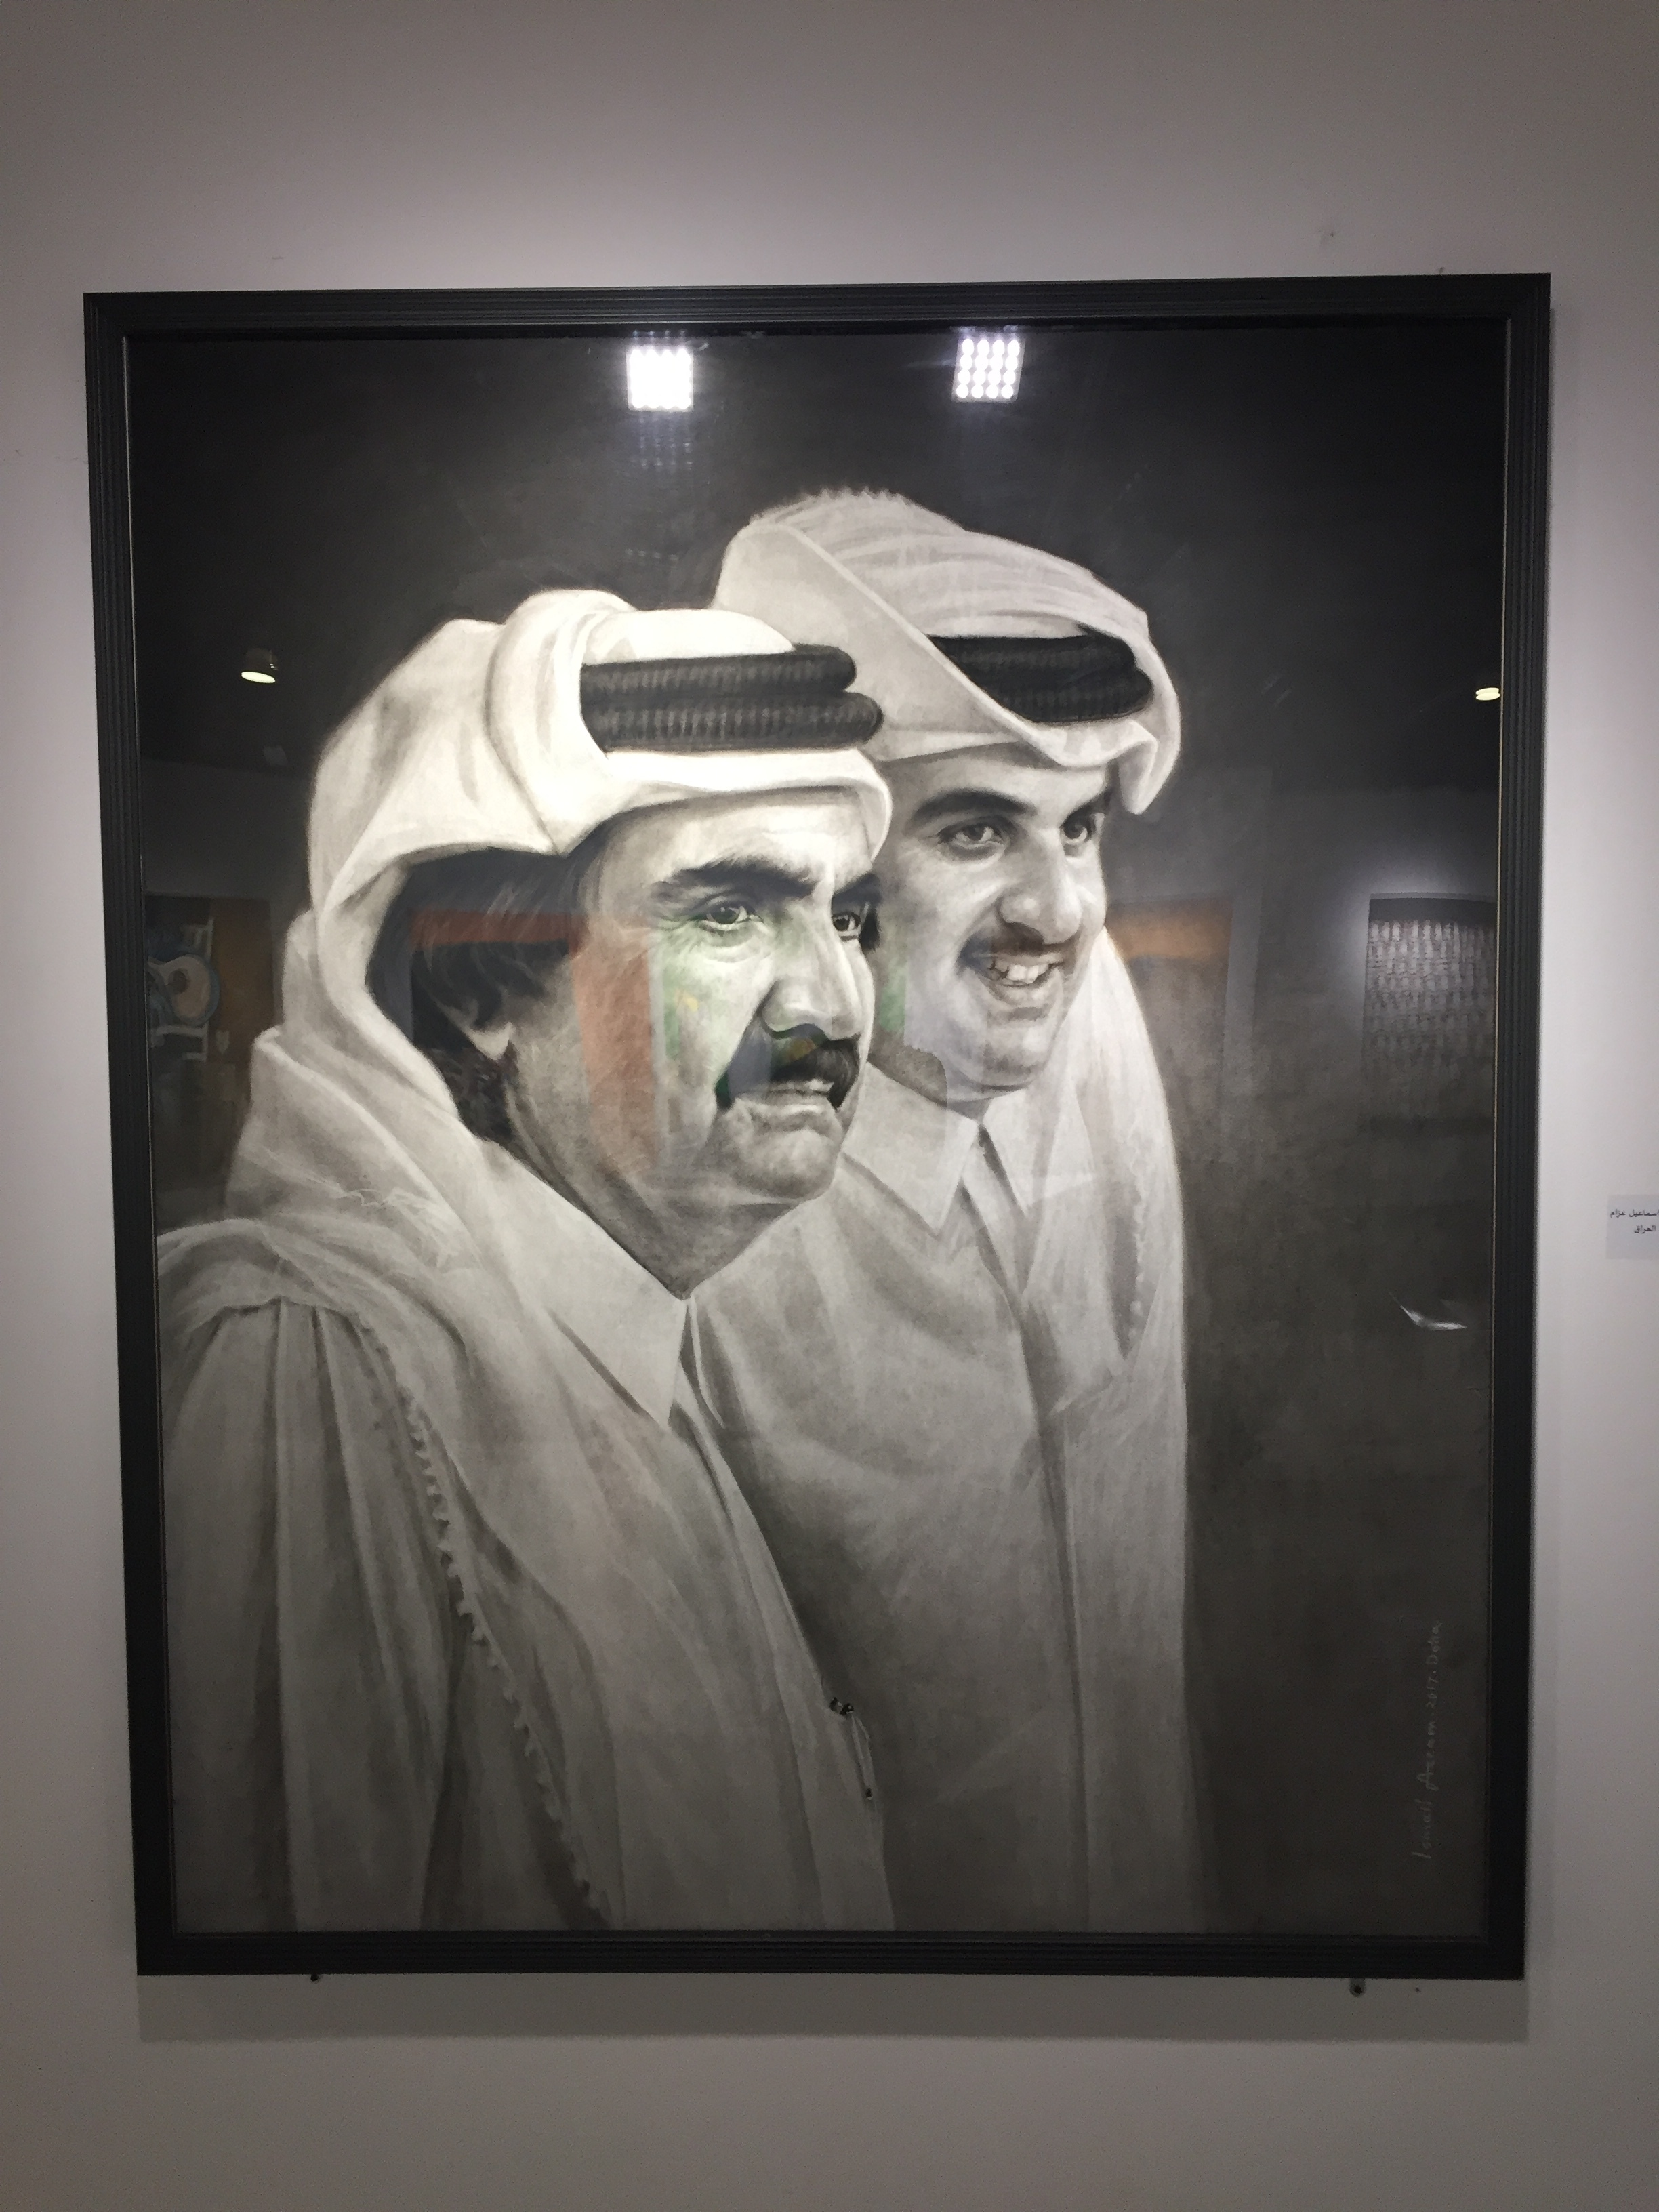 Qatar's new and old leaders, the Sheikhs Al Thani.